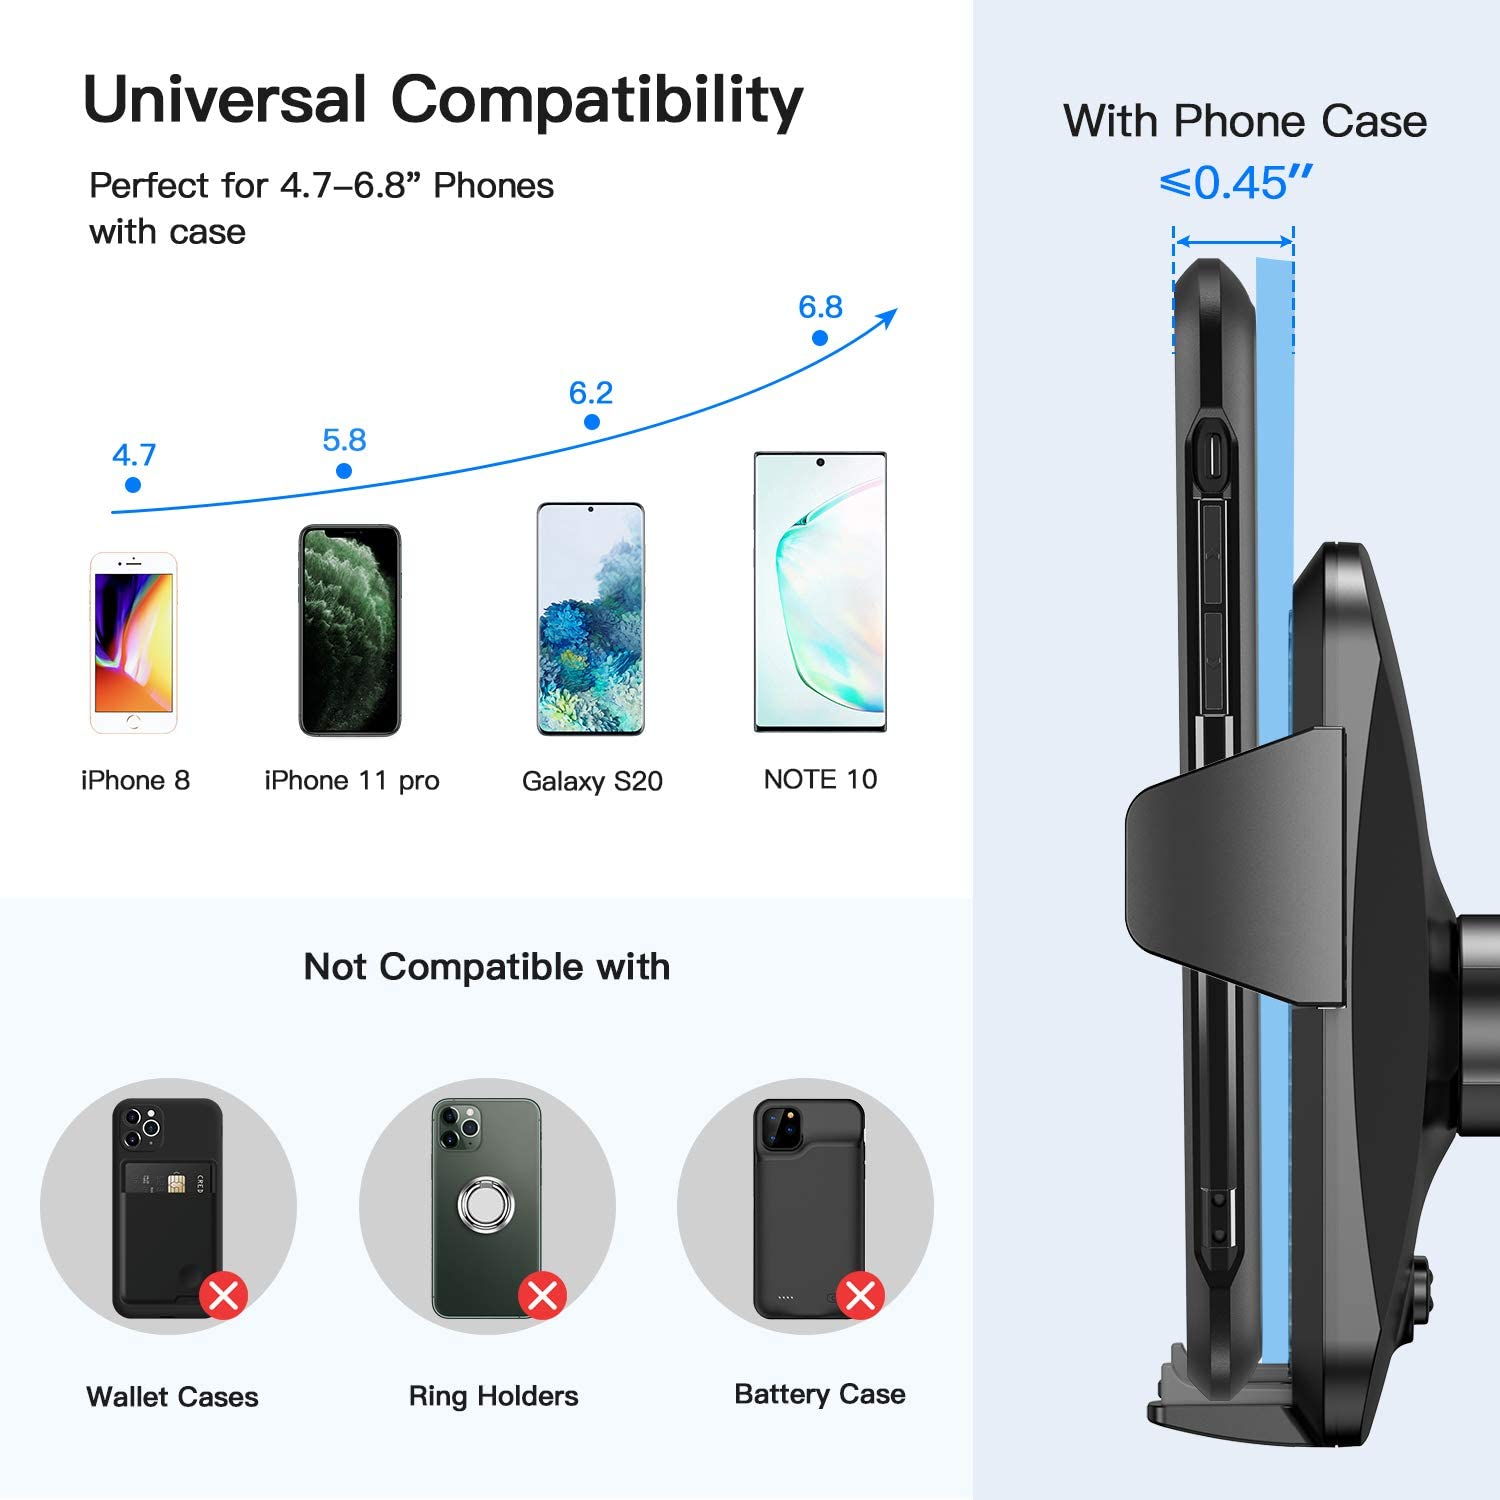 360 Rotation Cell Phone Stand for Car Real Stable Car Phone Mount Holder Fit for iPhone SE 11 X XS XR 8 Plus 7 etc 2020 Upgrade Universal Cell Phone Holder for Car and All Android Phones Joyroom